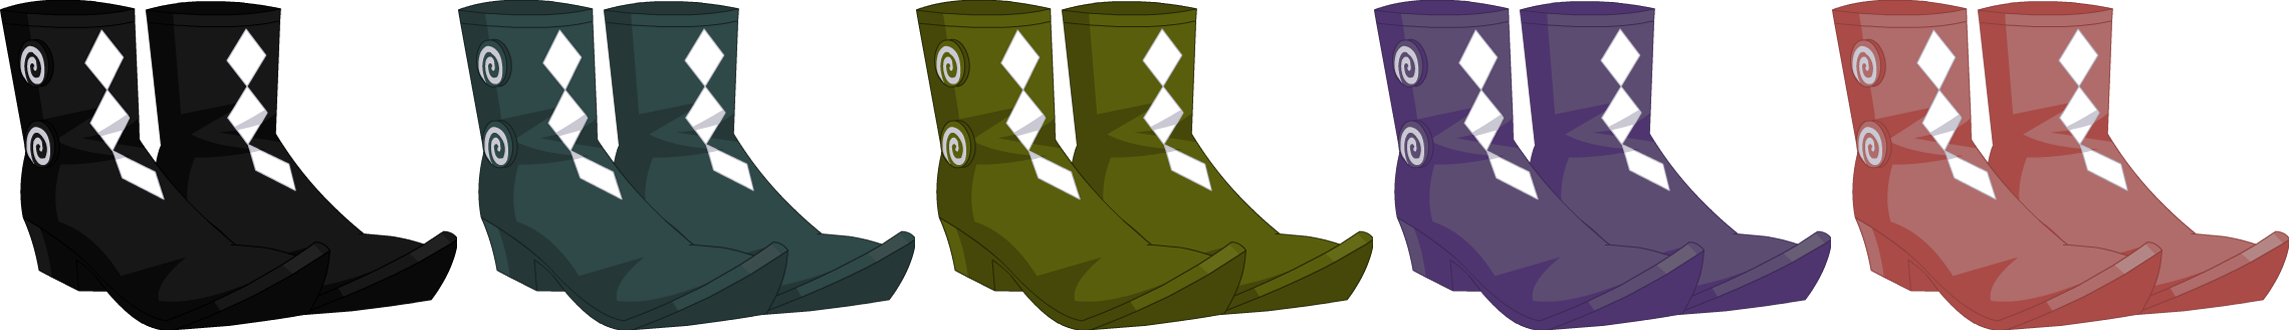 Topsy-Turvy Boots - Female